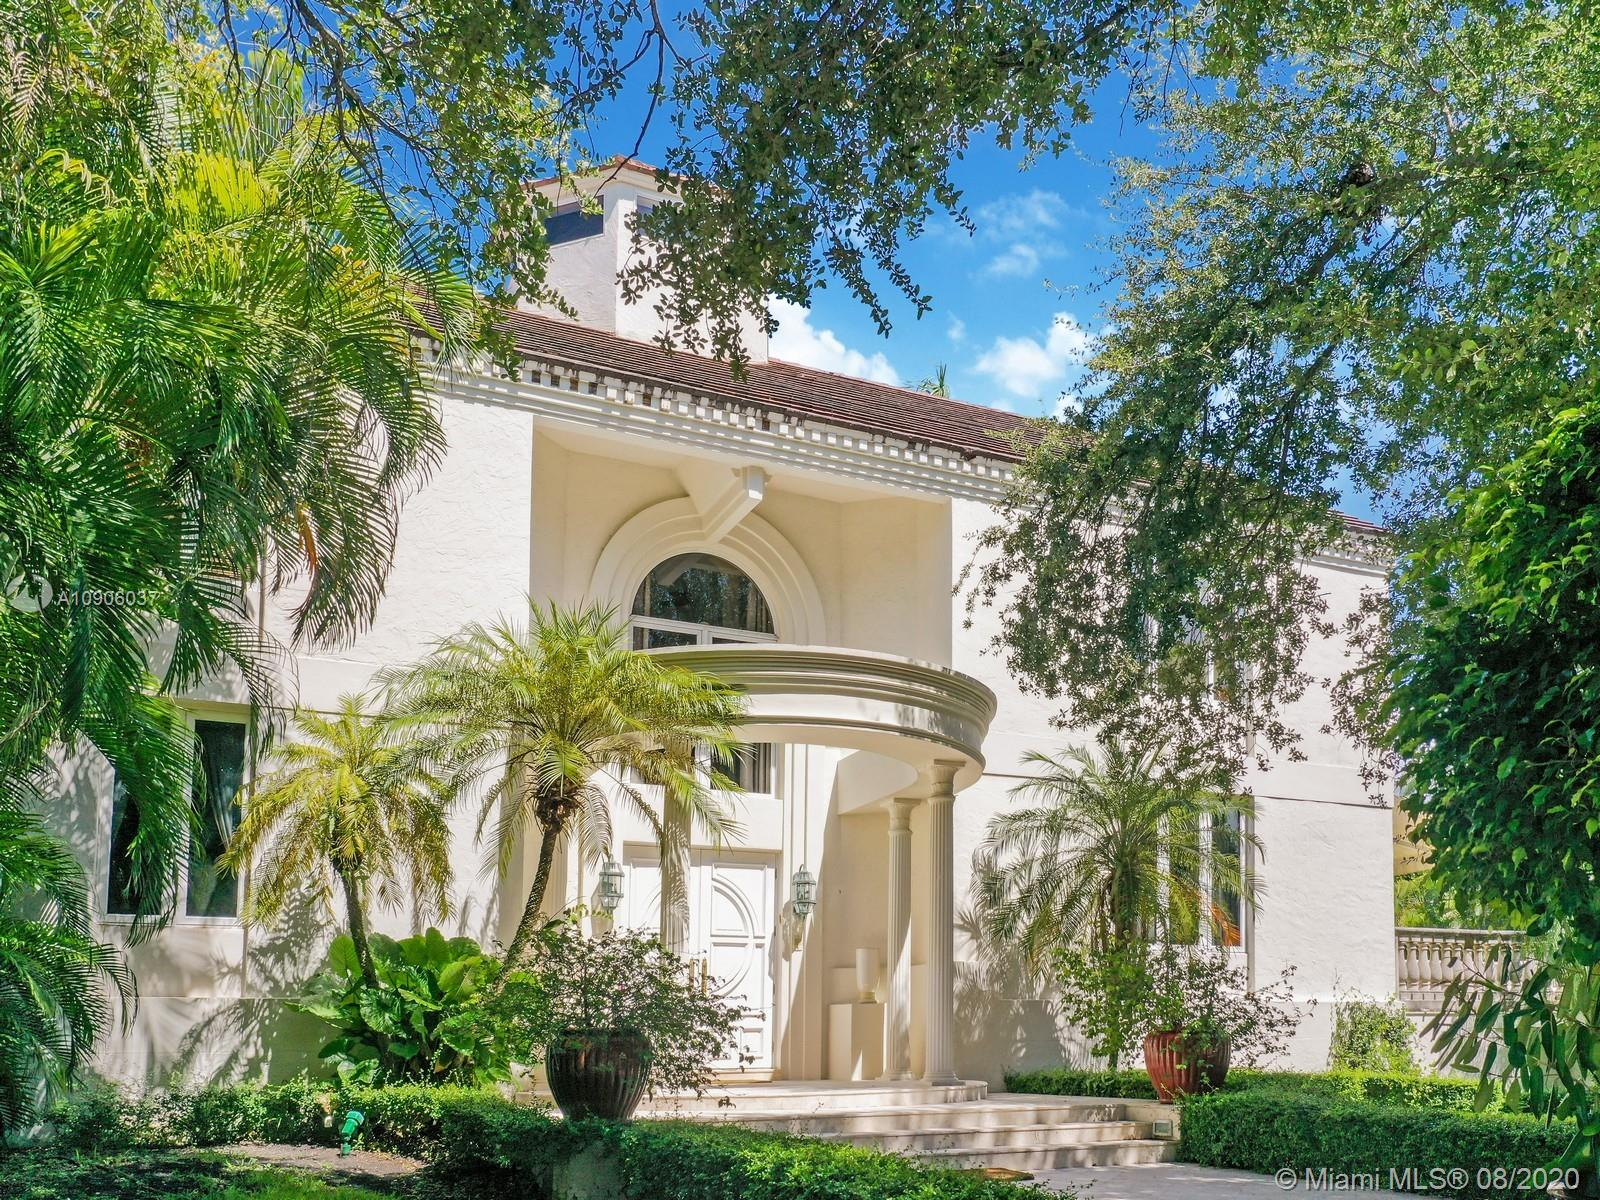 Just a block from media mogul Pharell's new $30 million Miami bunker, this gradiose tri-level Mediterrenean style estate sits center spot on an oversized lot with beautiful north and south views of its curated garden landscapes. Totally renovated with custom work throughout, from the wood inlaid marble floors to the designer chandelier, the built-in cabinetry to the fitted drapes, the interiors of this home perfectly accentuate its beautiful exteriors. The floor to double ceiling windows fill the home with natural light, but the floorplan layout of this trophy property makes it truly unique and perfect for both private, grand entertainment and a beautiful lifestyle. A MUST SEE!! 3D walkthrough and video available. Contact listing agent for more information.